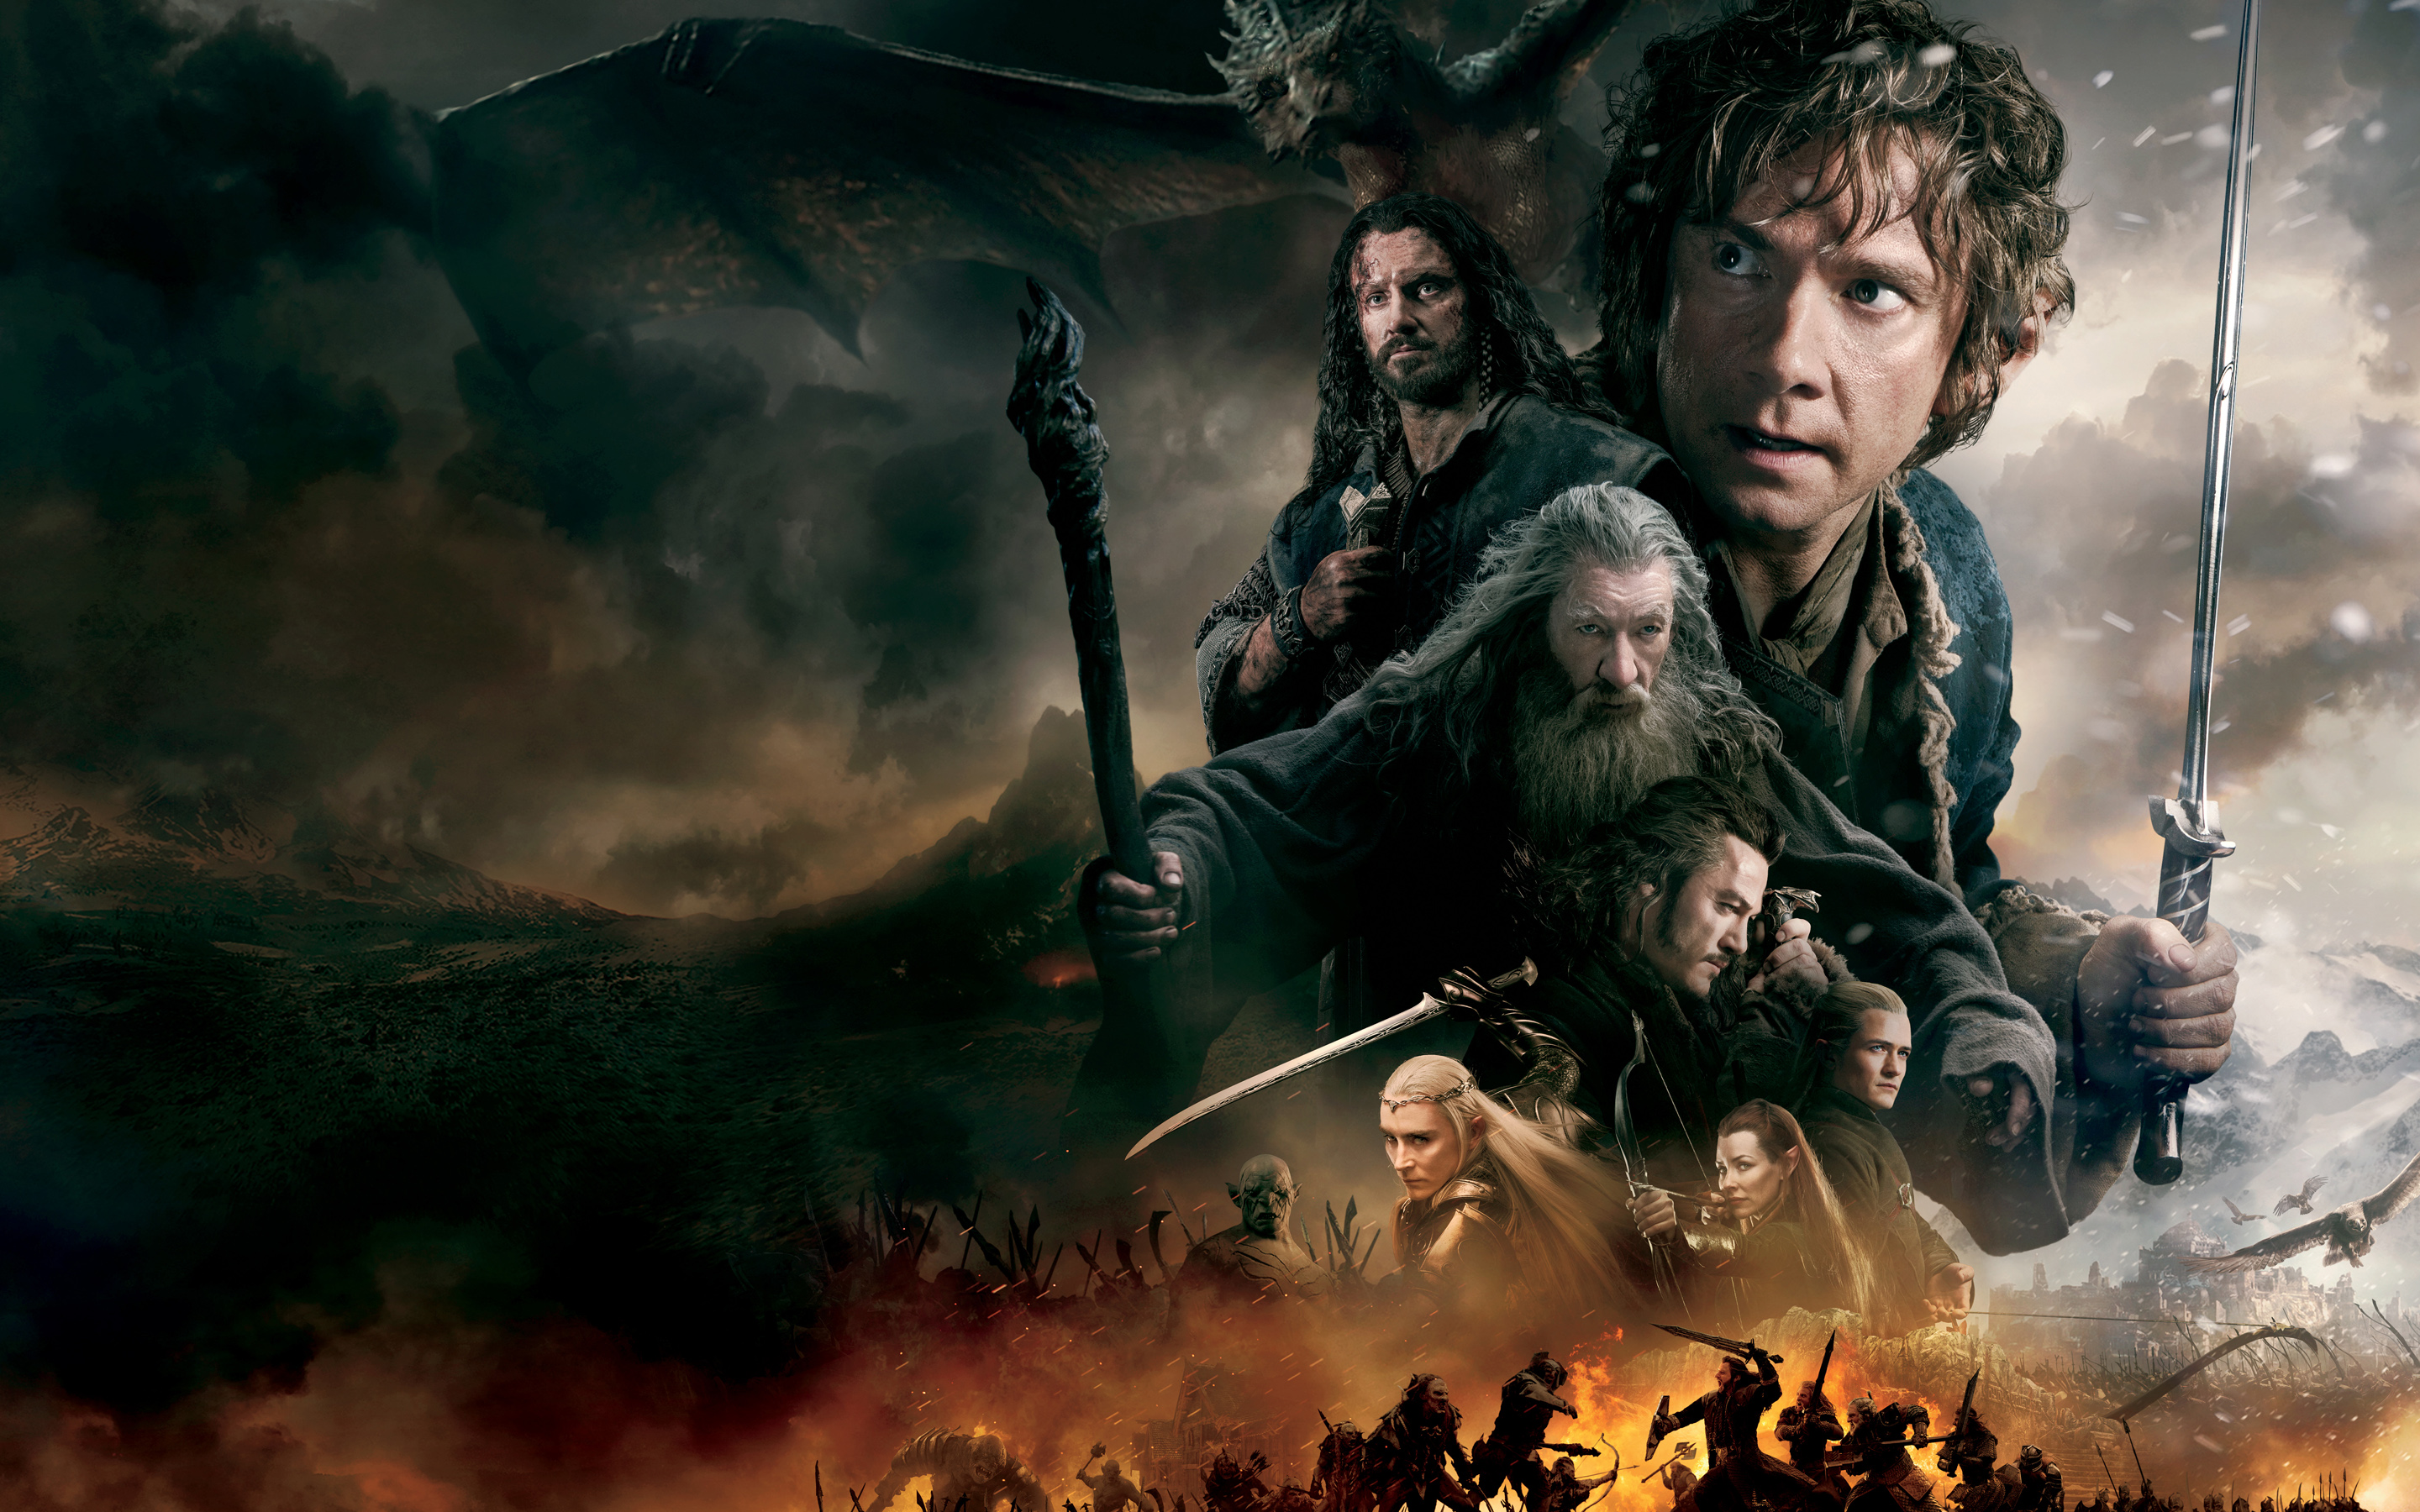 Hobbit The Battle of the Five Armies 2014 Wallpapers HD Wallpapers 2880x1800